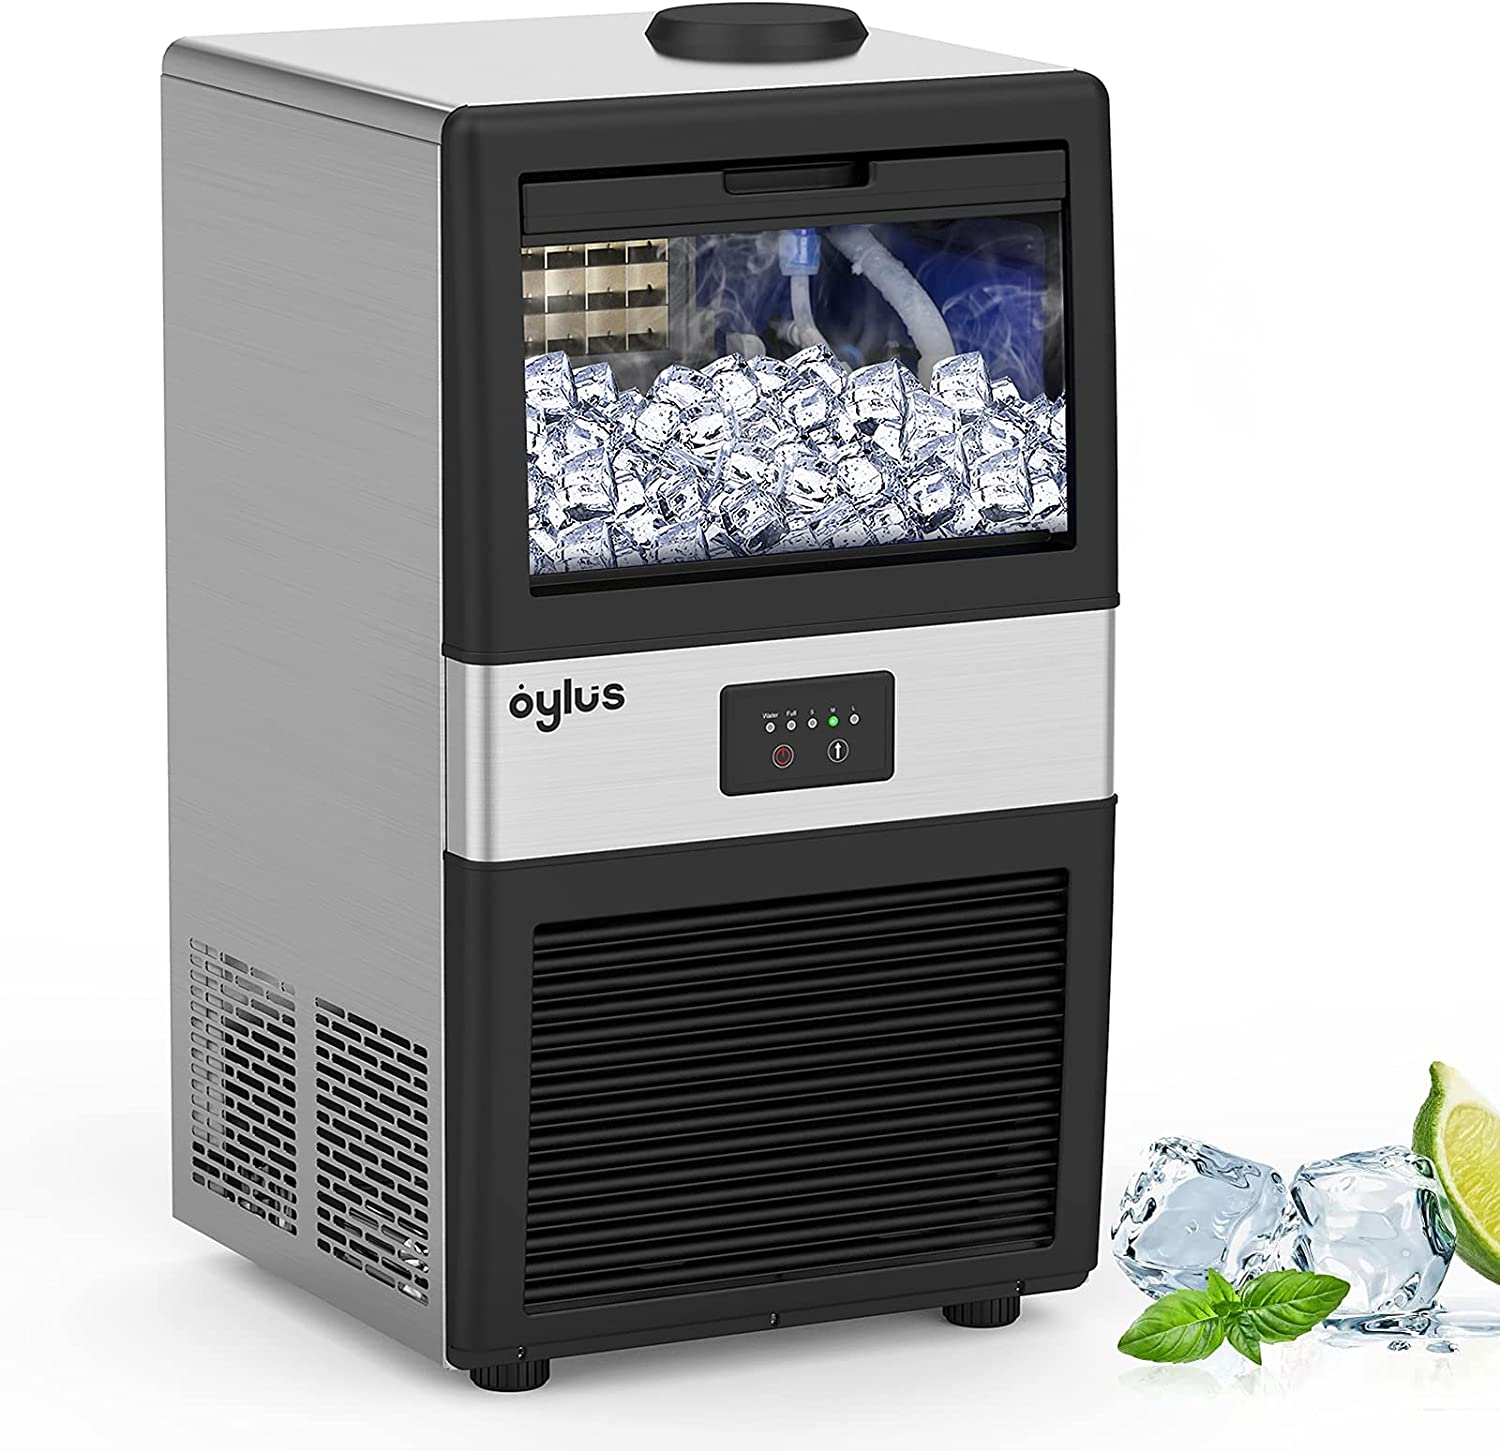 OYLUS Commercial Ice Maker Machine, 70lbs/24H Stainless Steel Freestanding Ice Machine With 17LBS Ice Storage Capacity, 32 Ice Cubes Within One Cycle Of 11-20 Mins For Home Party, Bar, Cafe and Office